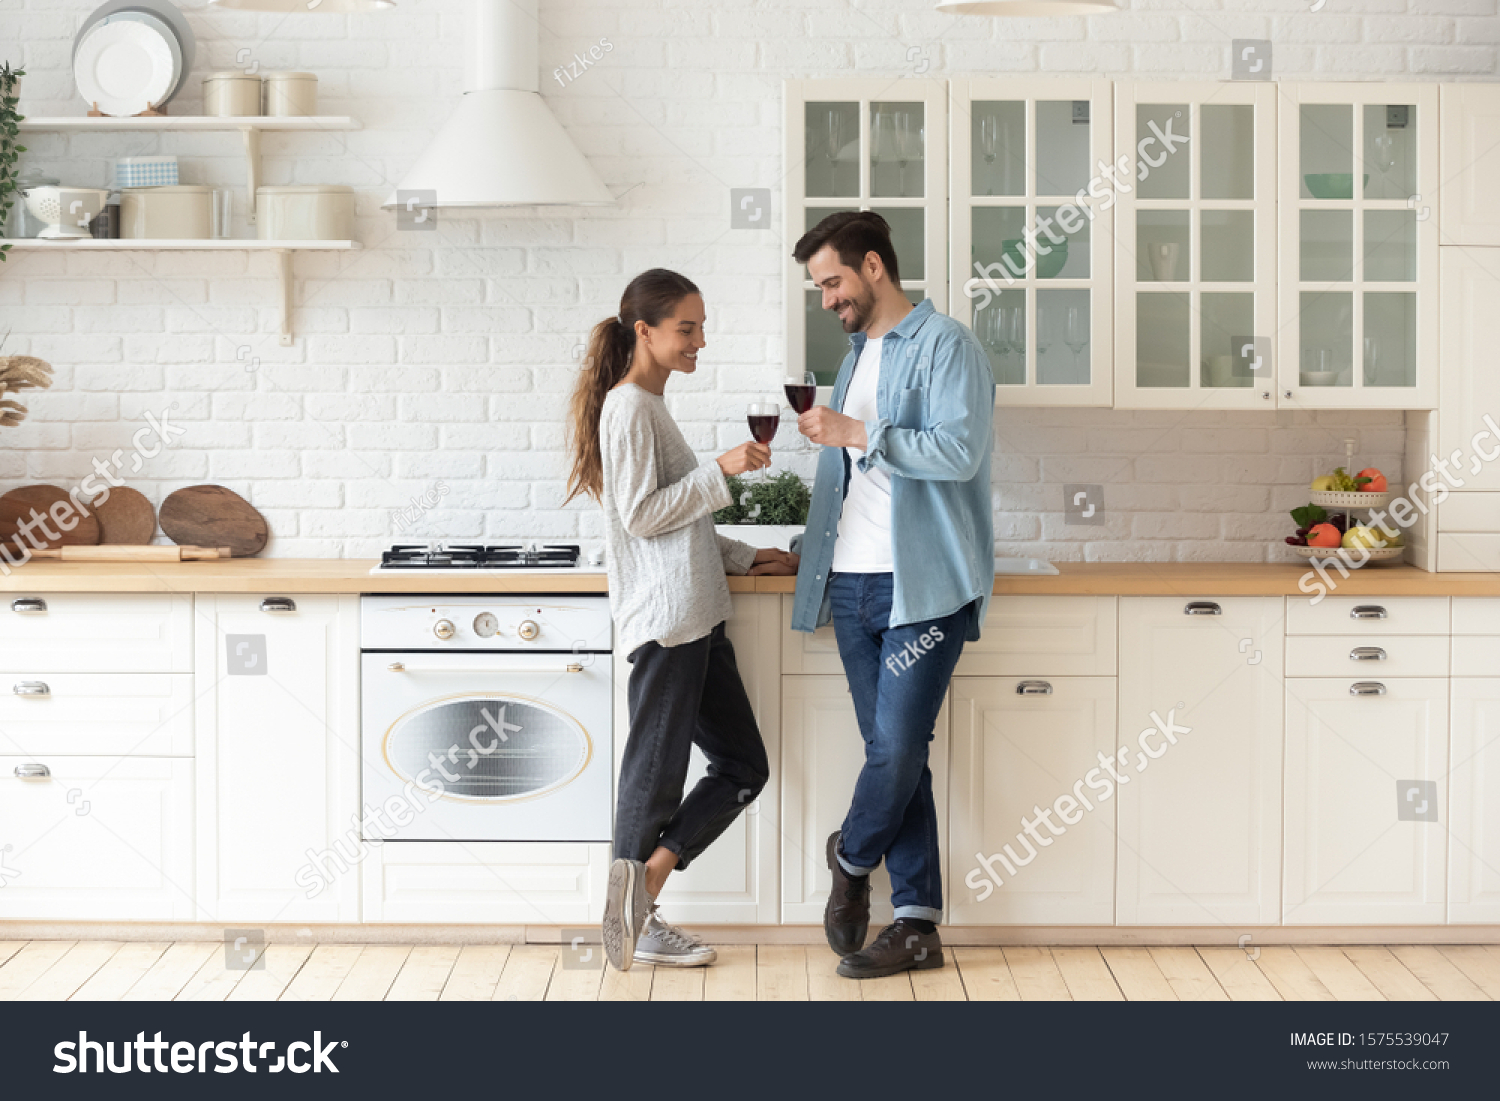 Romantic affectionate beautiful young couple holding glasses standing in modern cozy white kitchen room interior, happy married guy husband and girl wife drinking red wine celebrate together at home #1575539047